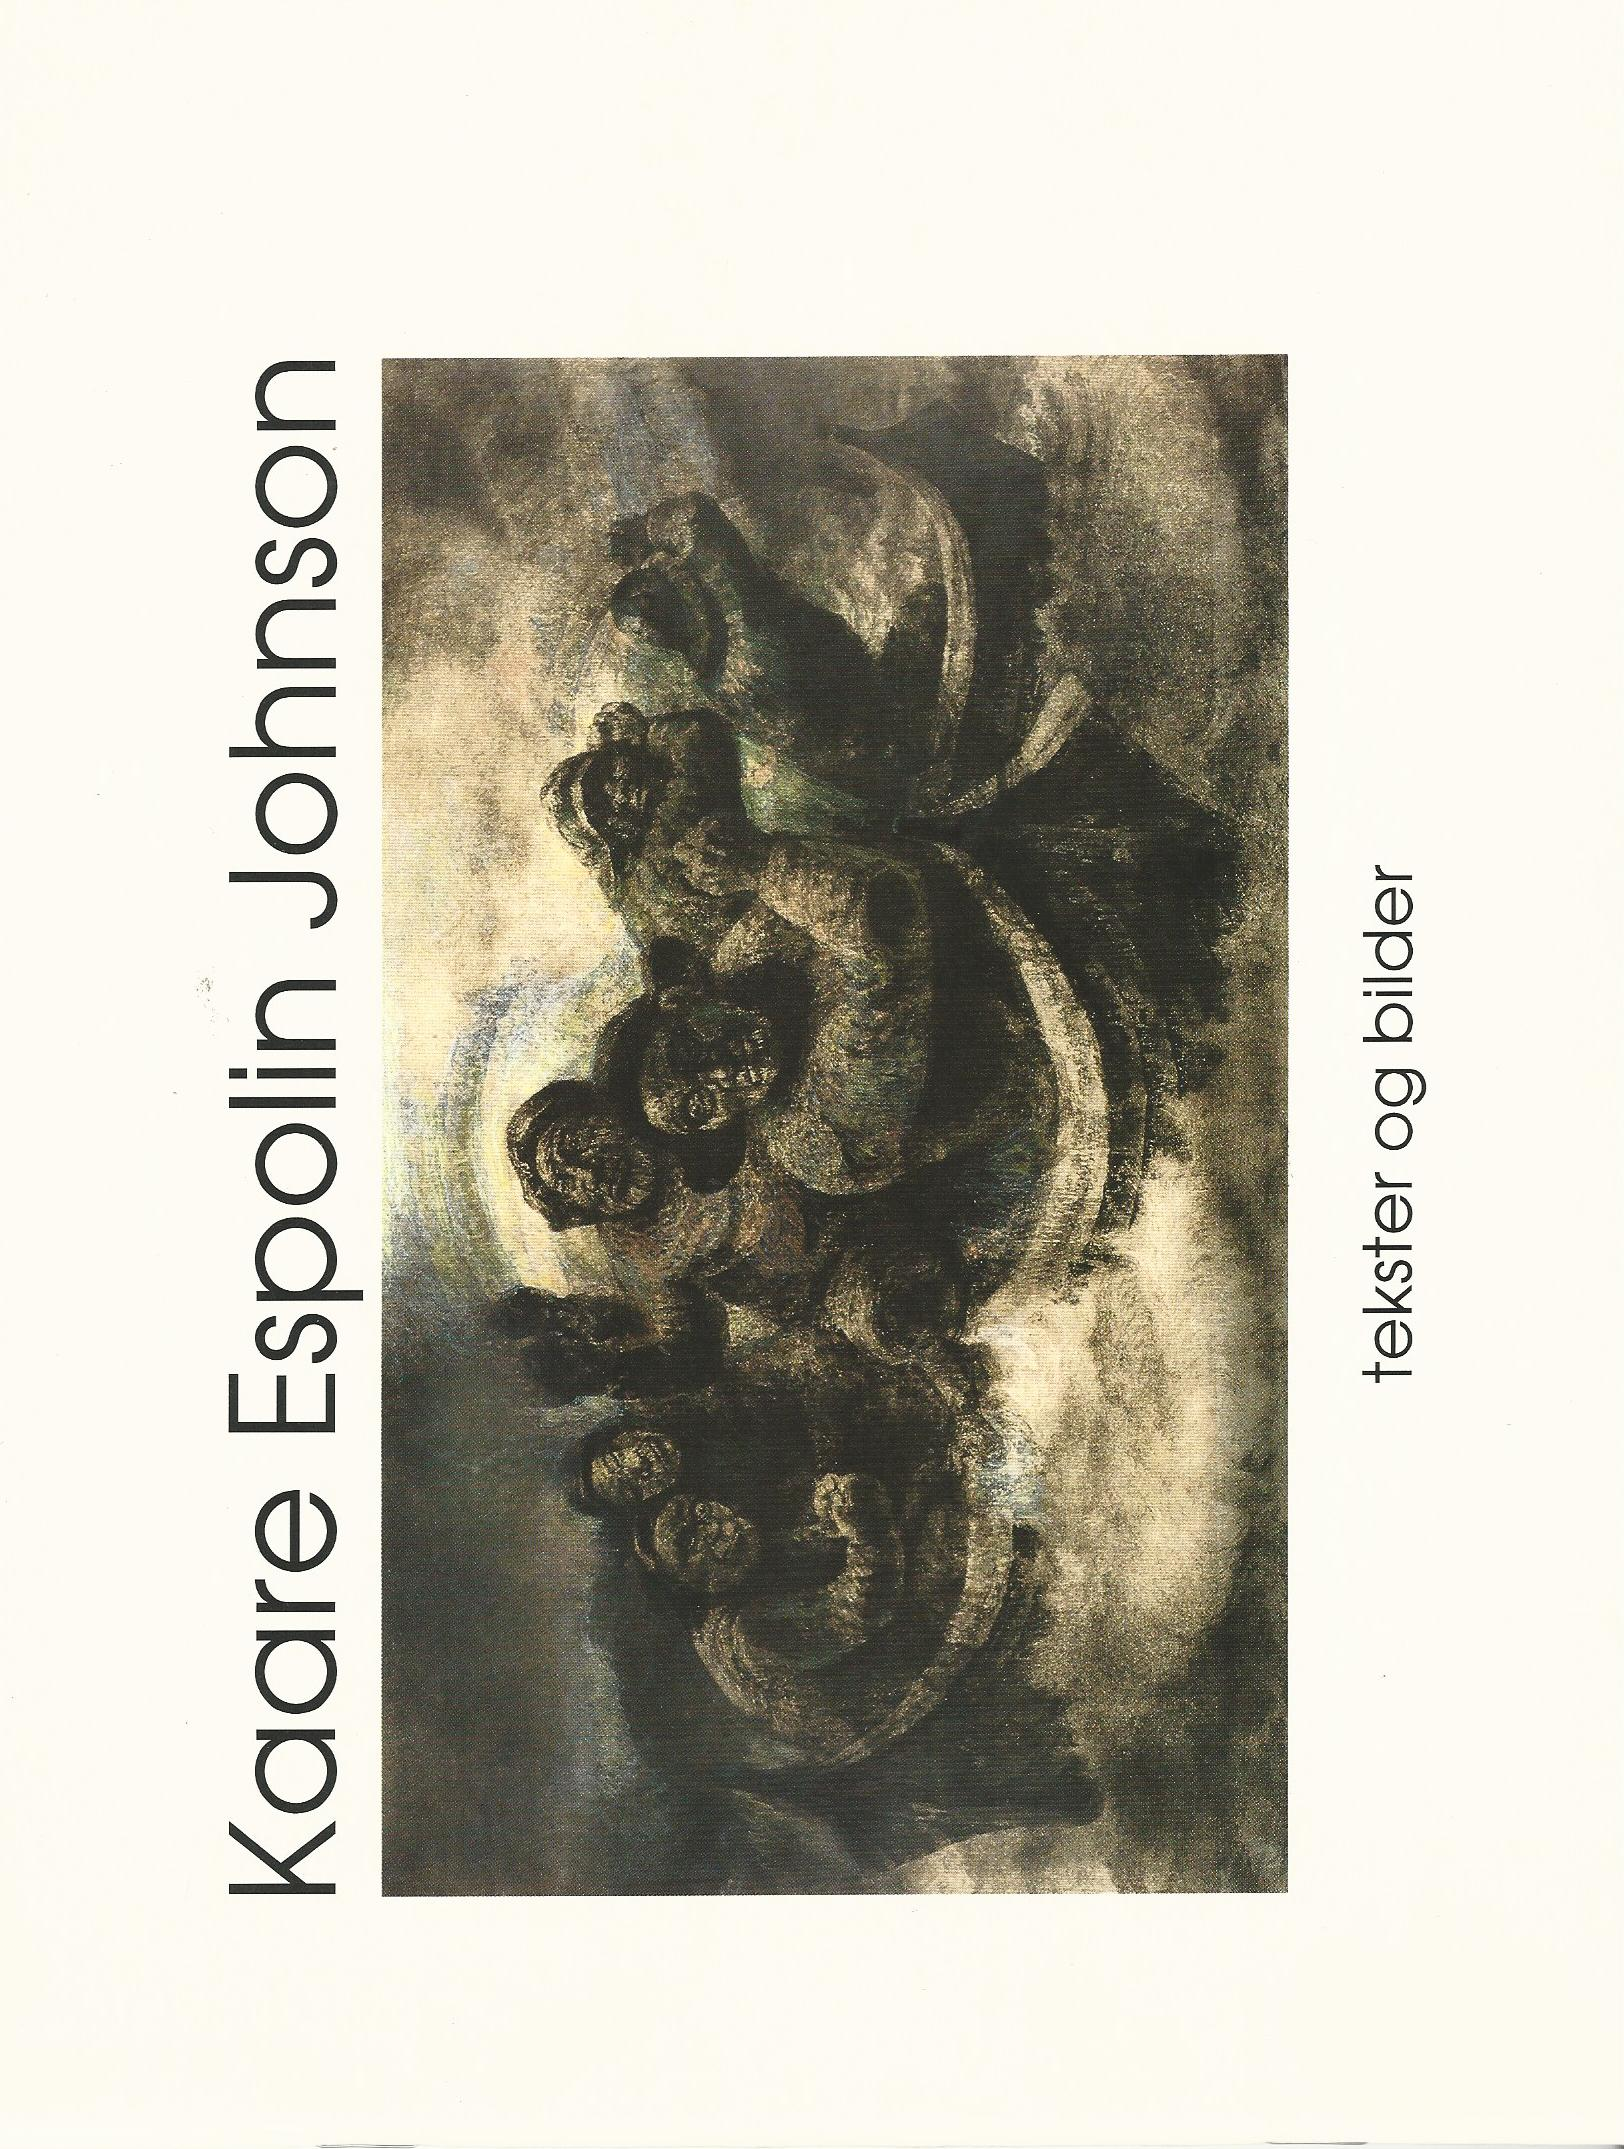 Image for Kaare Espolin Johnson: Tekster og Bilder (Texts and Images)